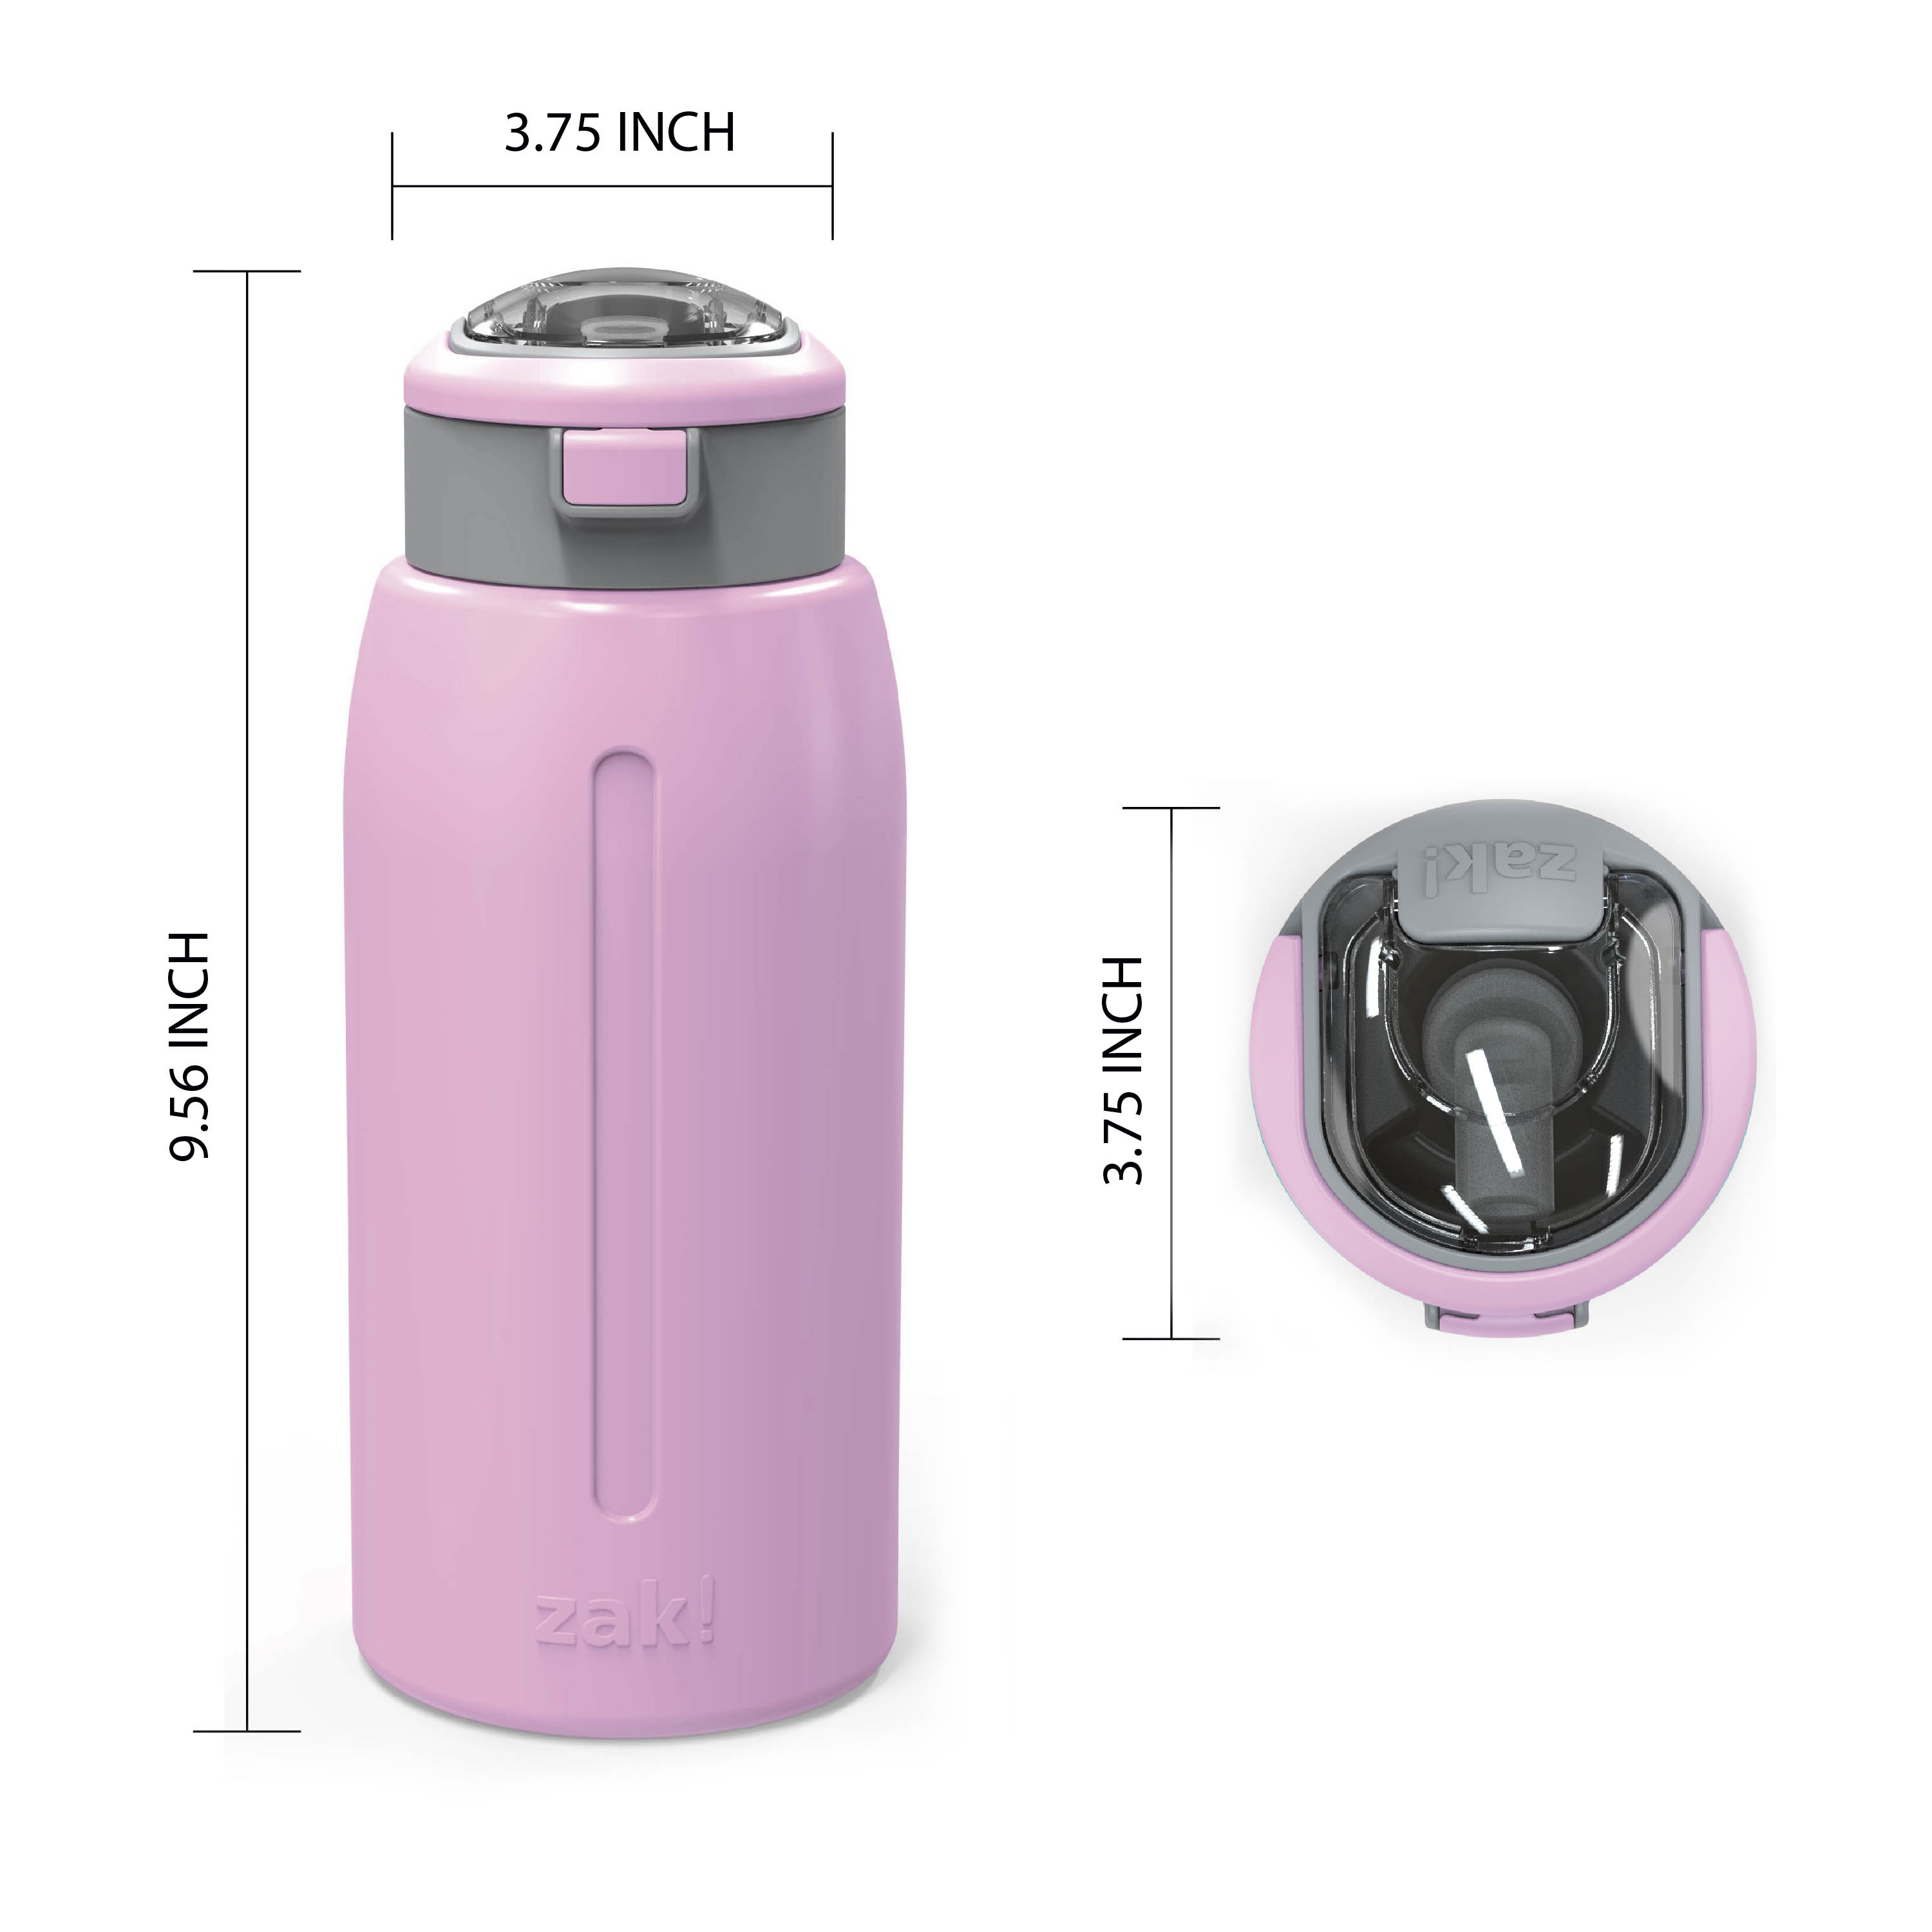 Genesis 32 ounce Stainless Steel Water Bottles, Lilac slideshow image 7